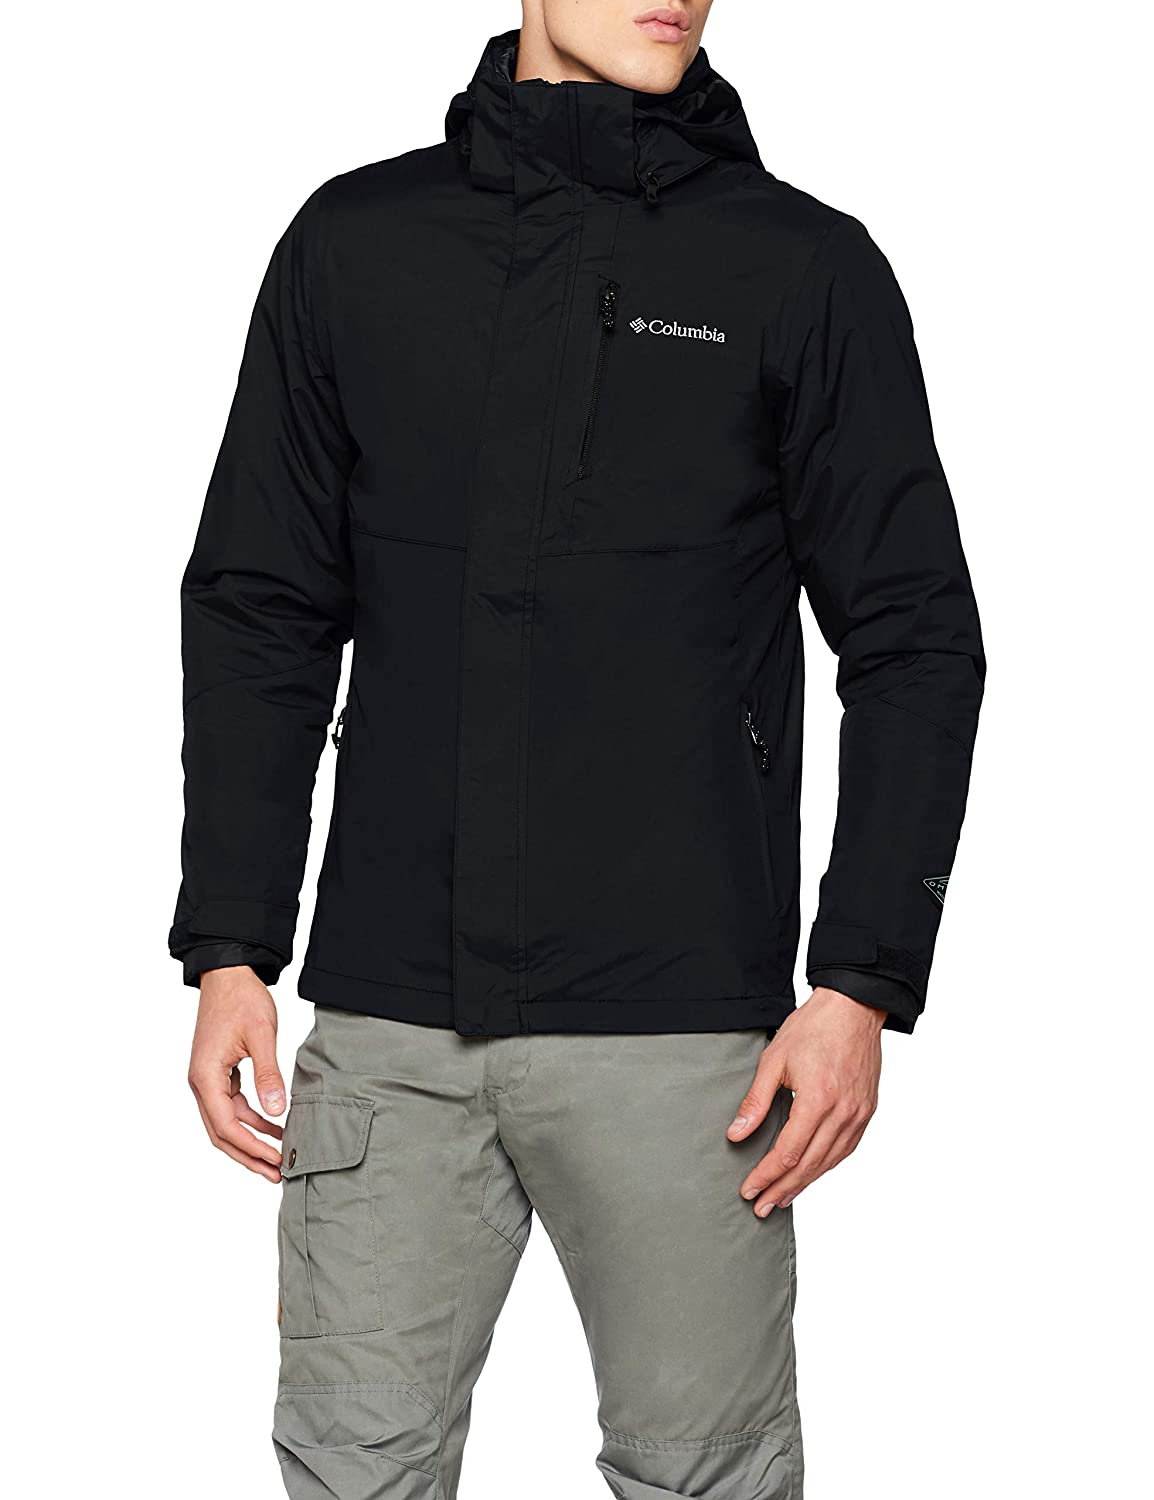 TALLA Talla XL. Columbia Element Blocker II Interchange Jacket Chaqueta Impermeable, Nailon, Hombre